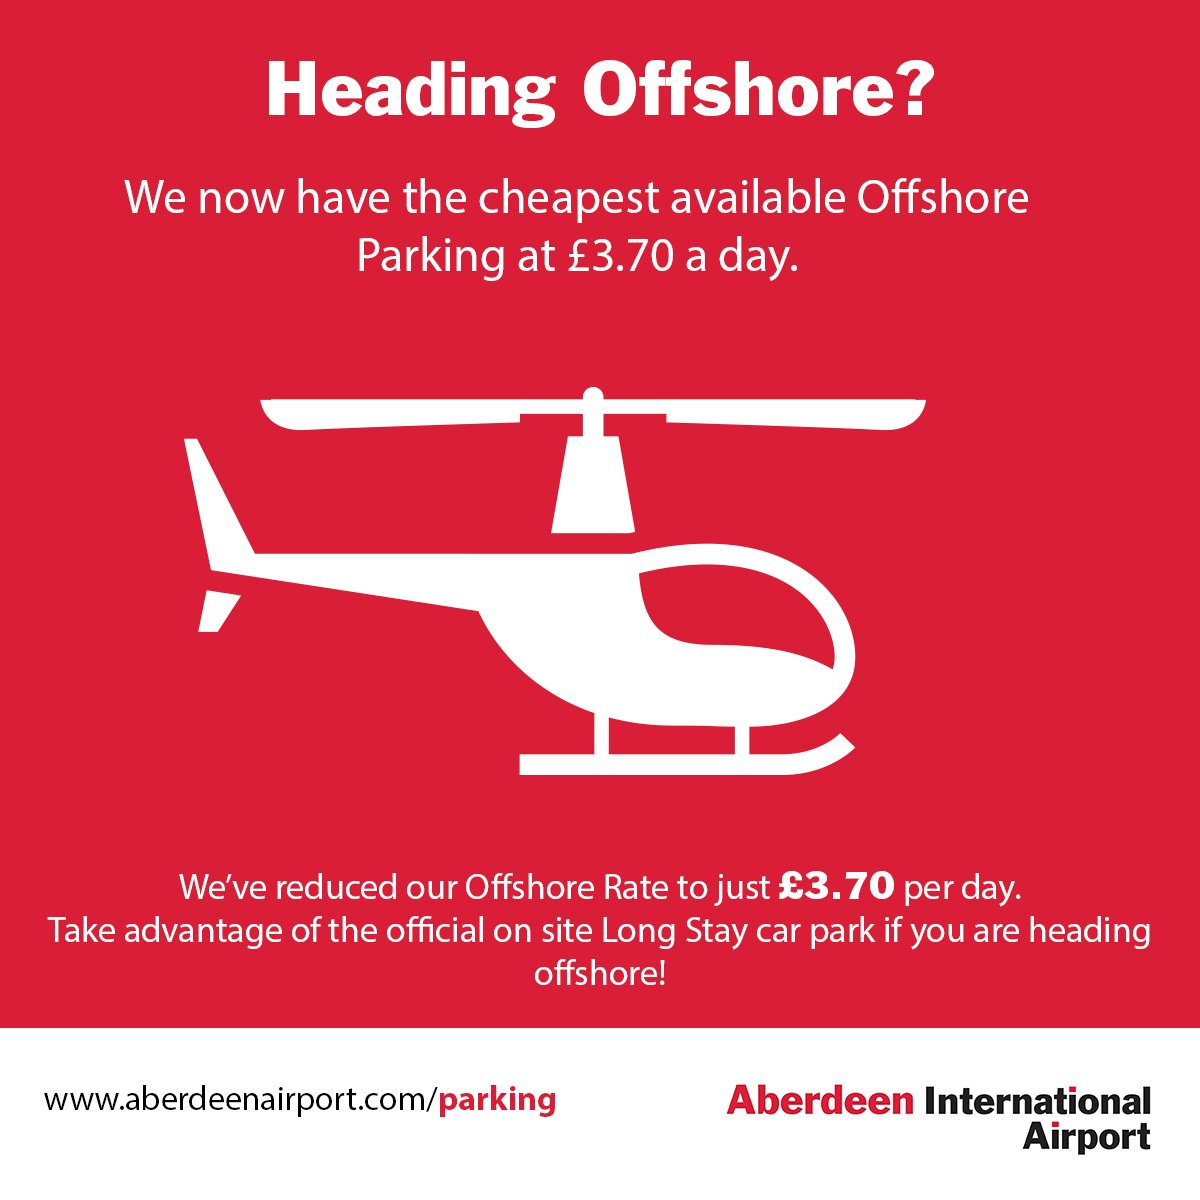 We've reduced our Offshore Rate to just £3.70 per day!